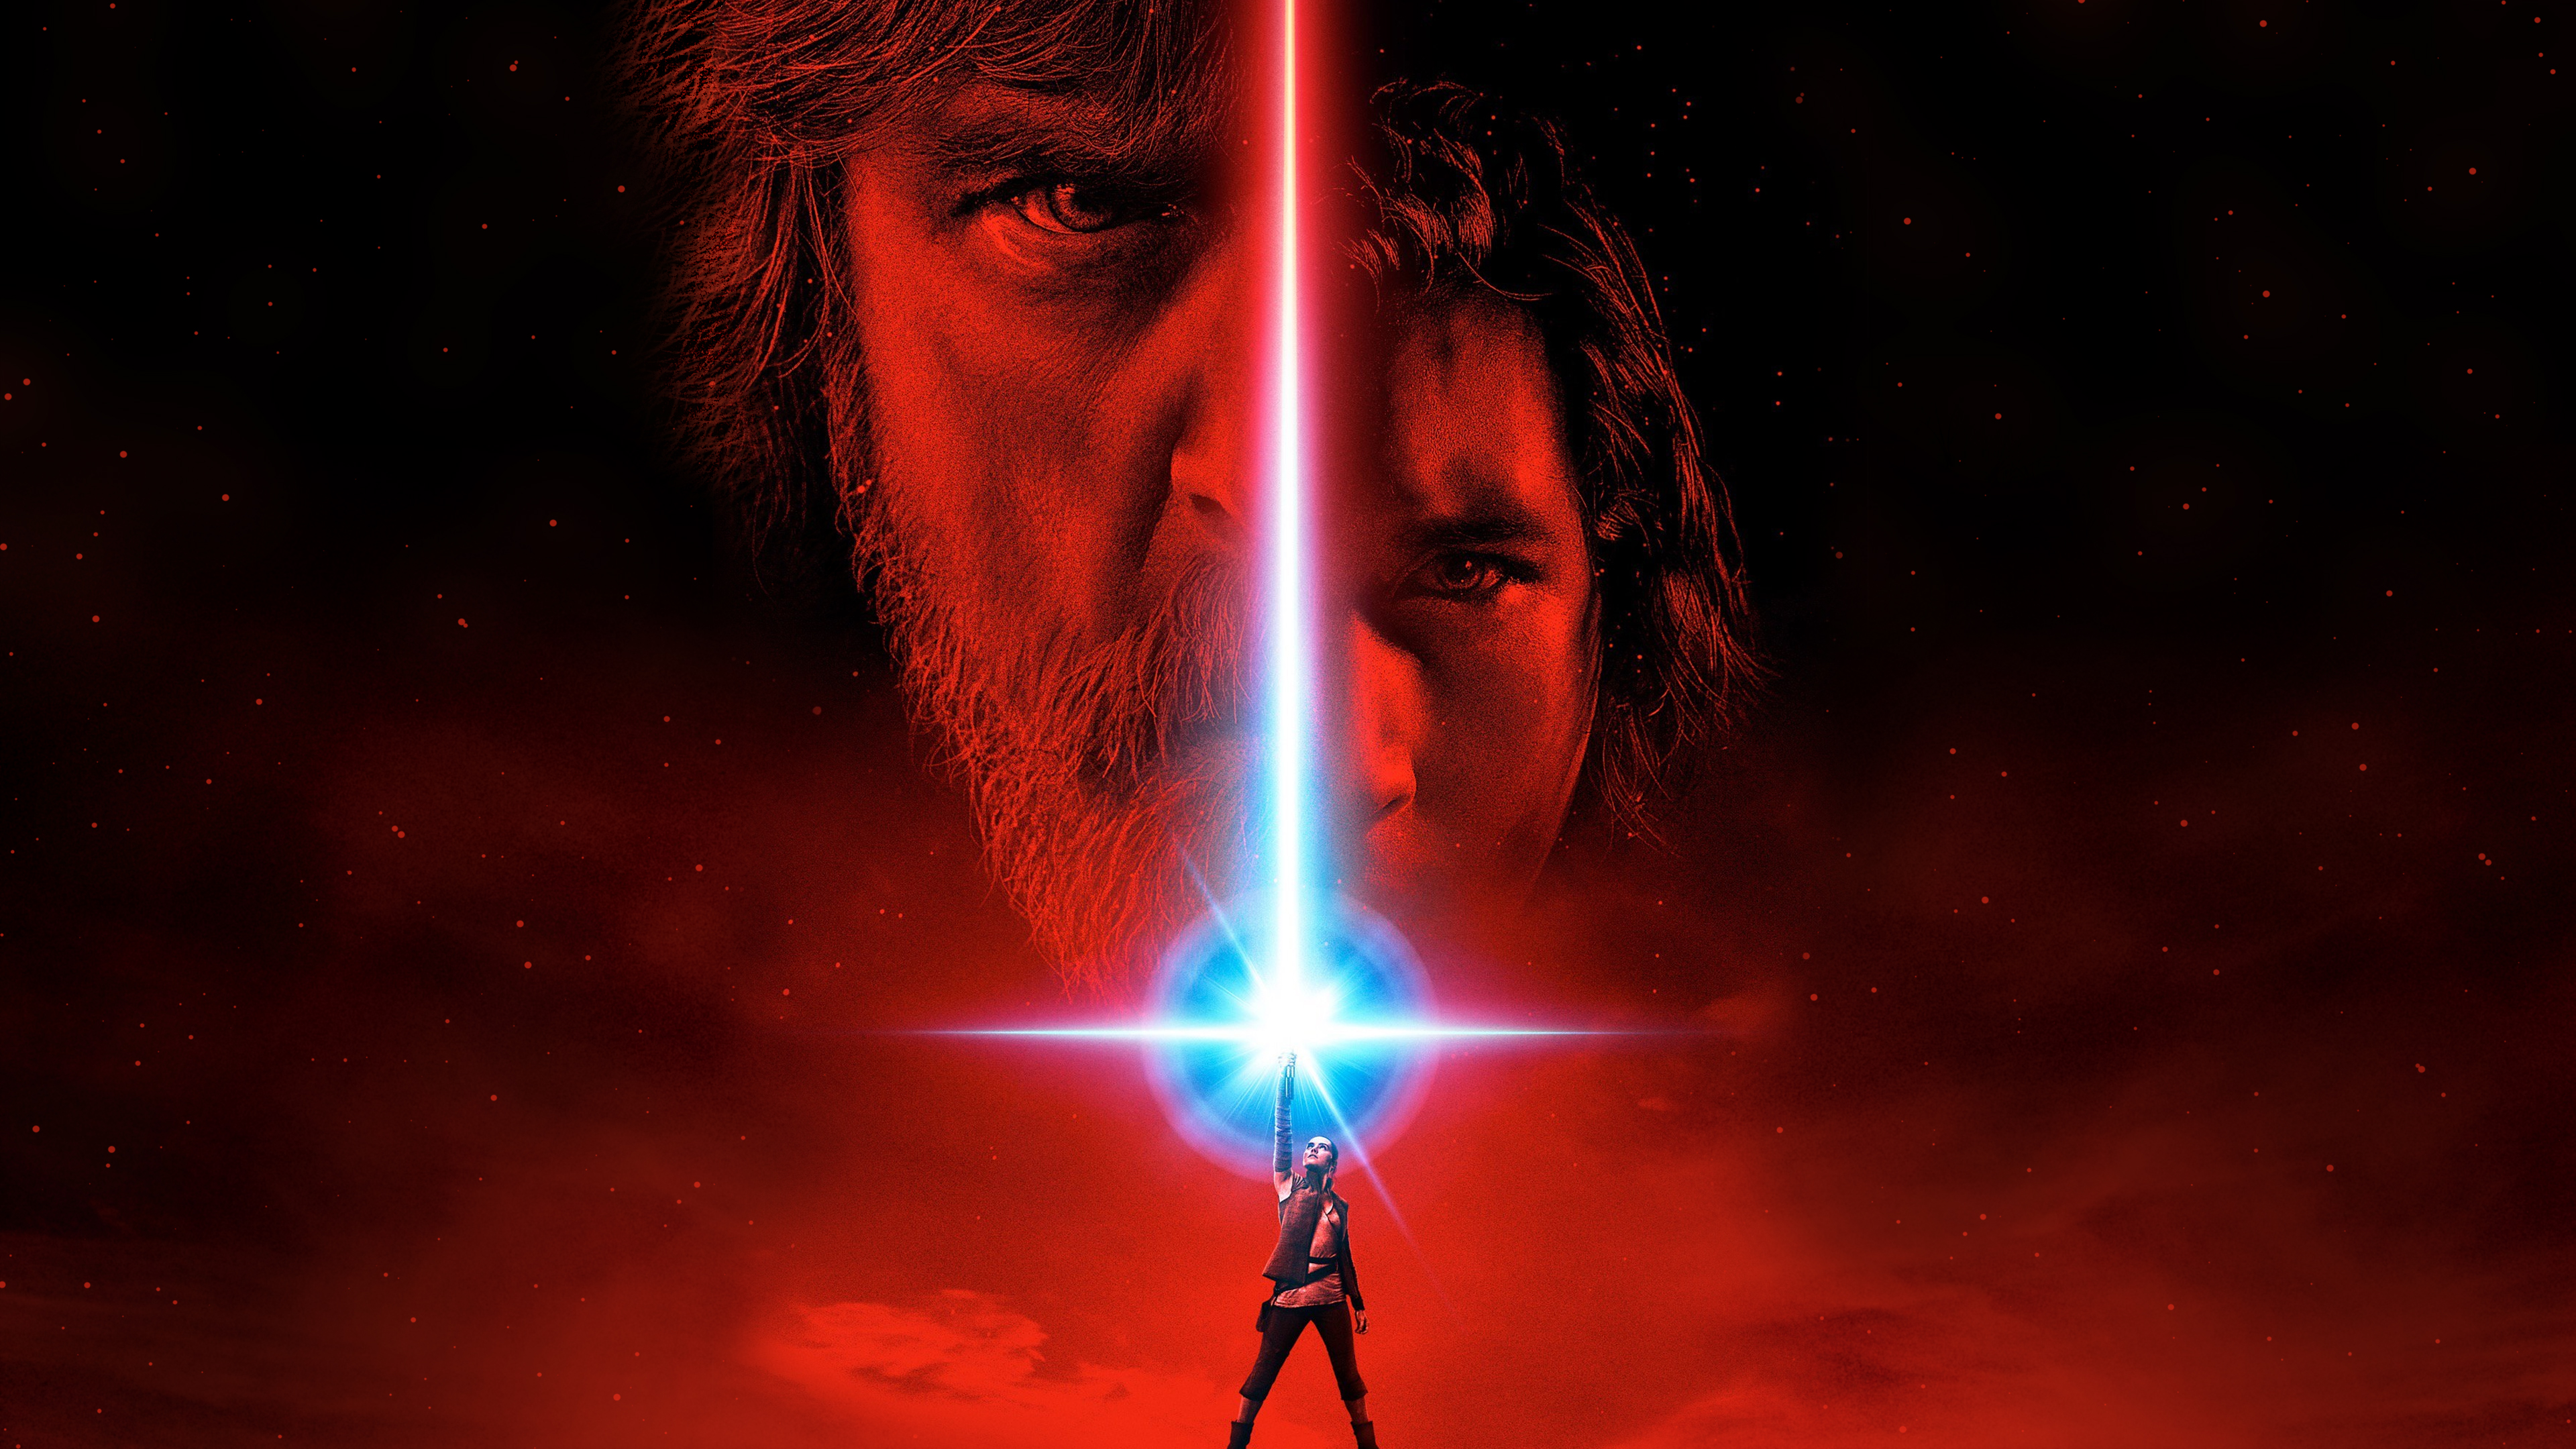 Wallpaper Star Wars 8 Affiche Luc et Kylo Cinema Video